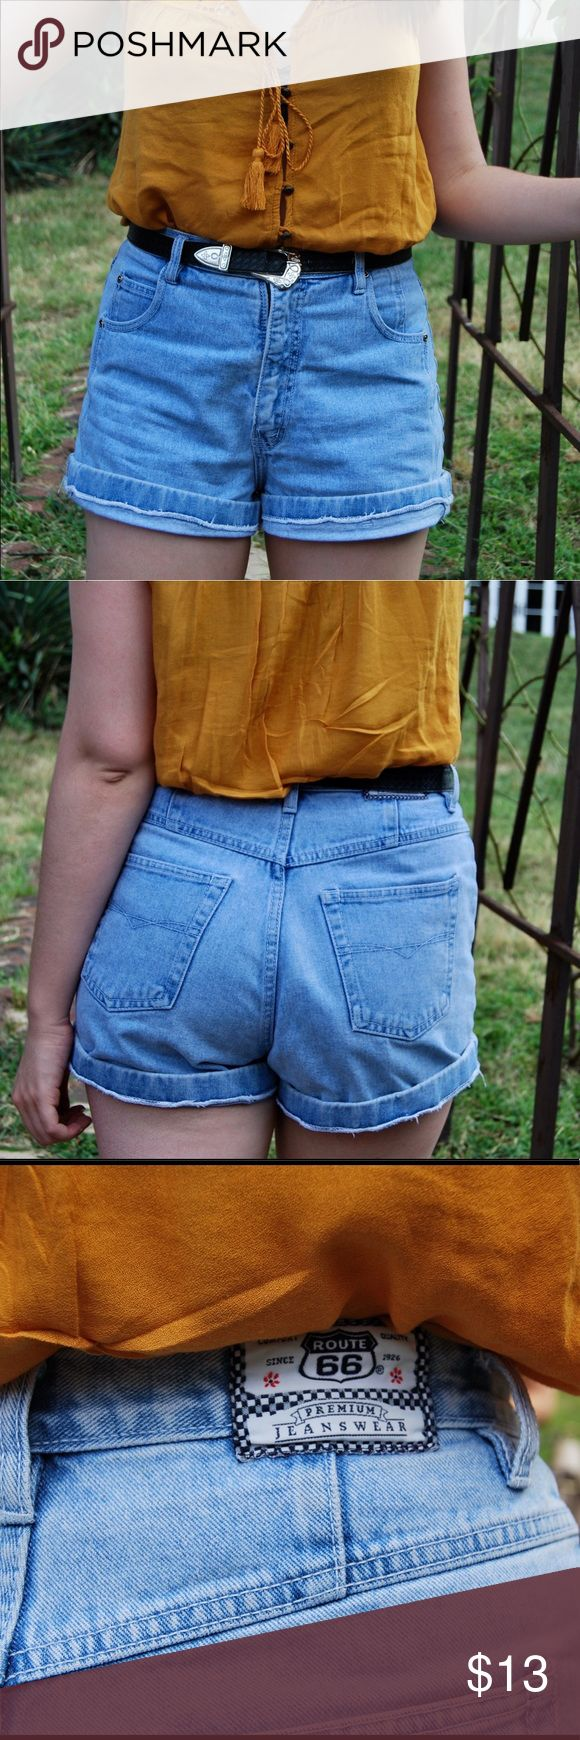 "Jean Queen Classic high waisted light wash shorts. Cuffed once in photos in addition to the pre-made cuff. In great condition and very comfy!  Tag says size 13/14, but fit a 10.  Model: size 10, 5'9"" Route 66 Shorts Jean Shorts"